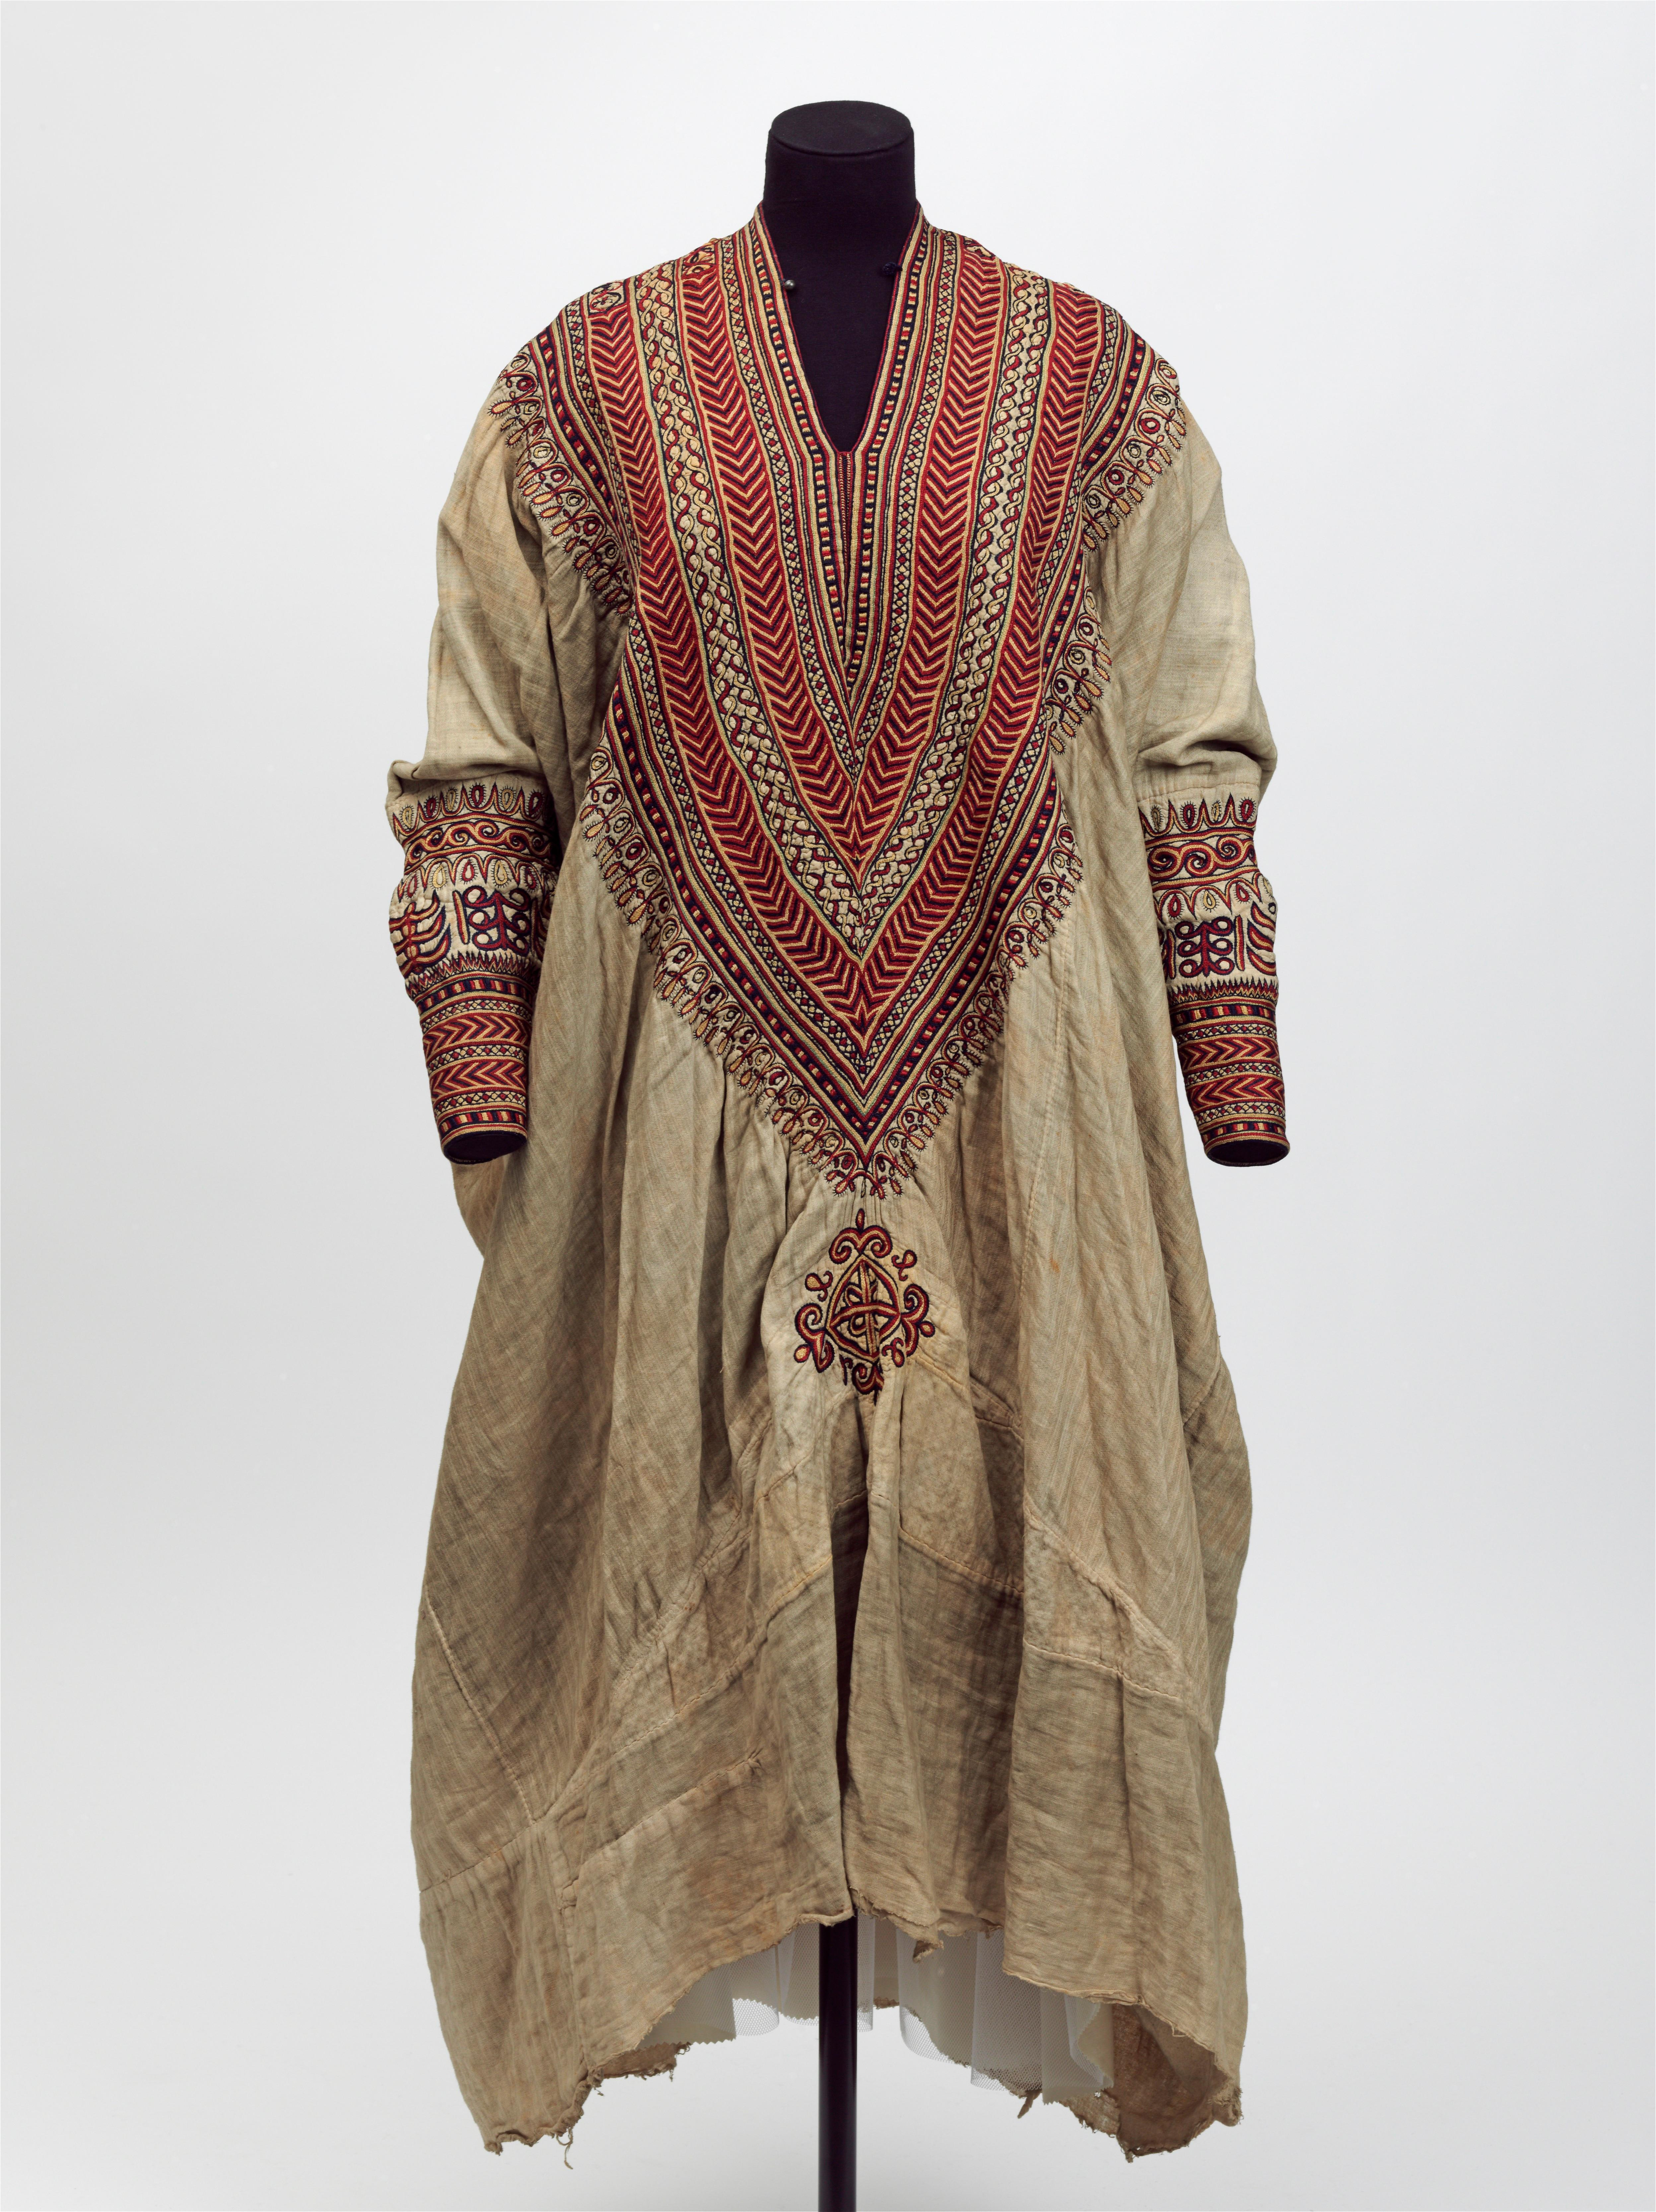 Cotton dress embroidered with silk,  said to have belonged to Queen Woyzaro Terunesh, made in the 1860s, given by the Secretary of State for India (c) Victoria and Albert Musuem, London.jpg